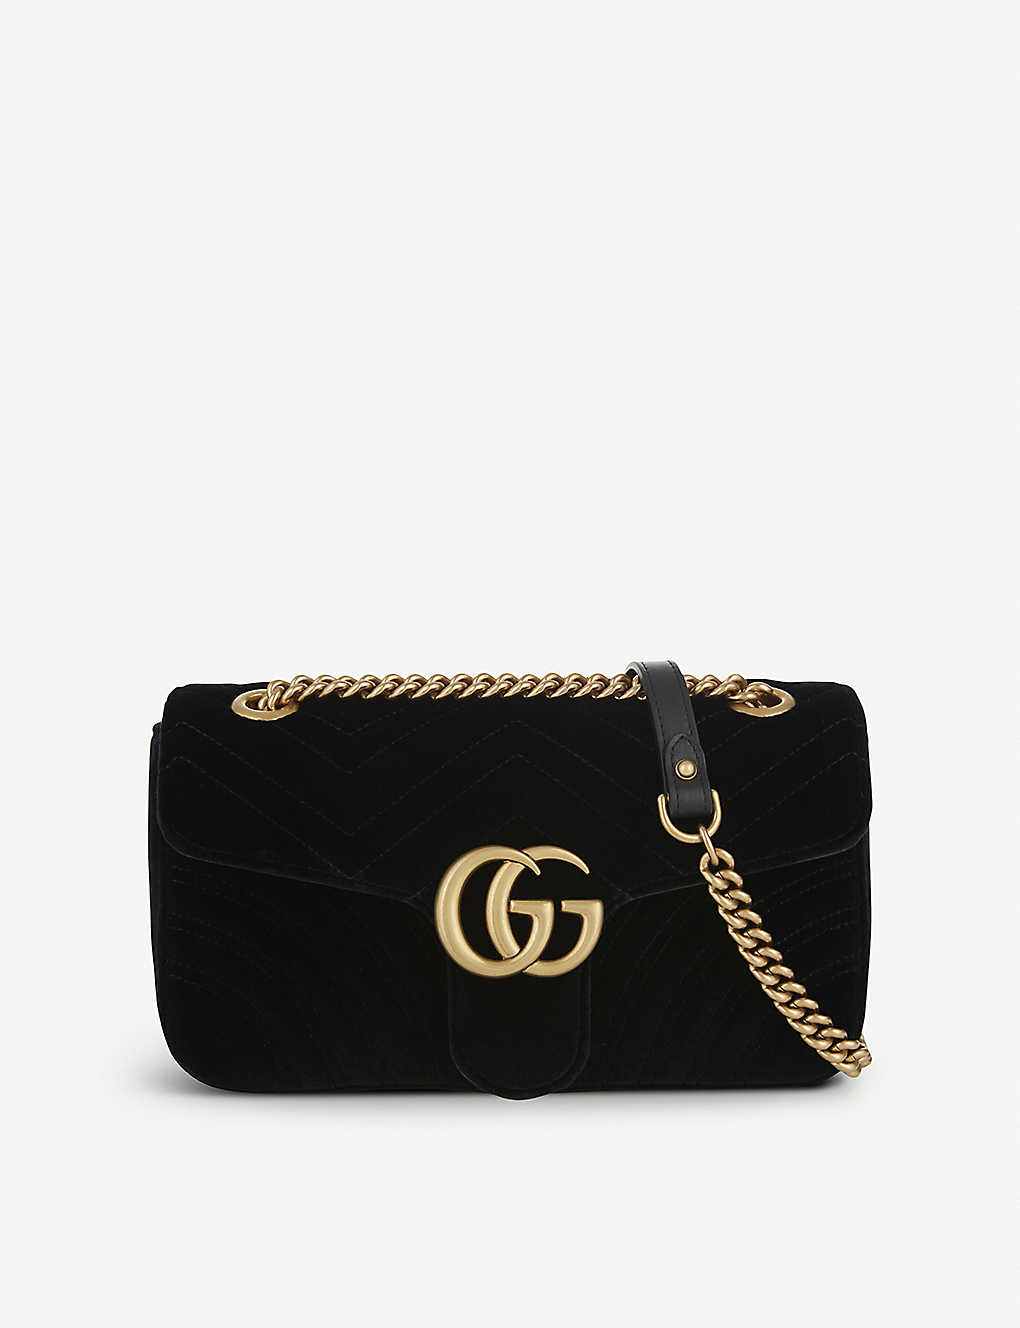 9f25e3c37b08 GUCCI - Marmont small velvet shoulder bag | Selfridges.com